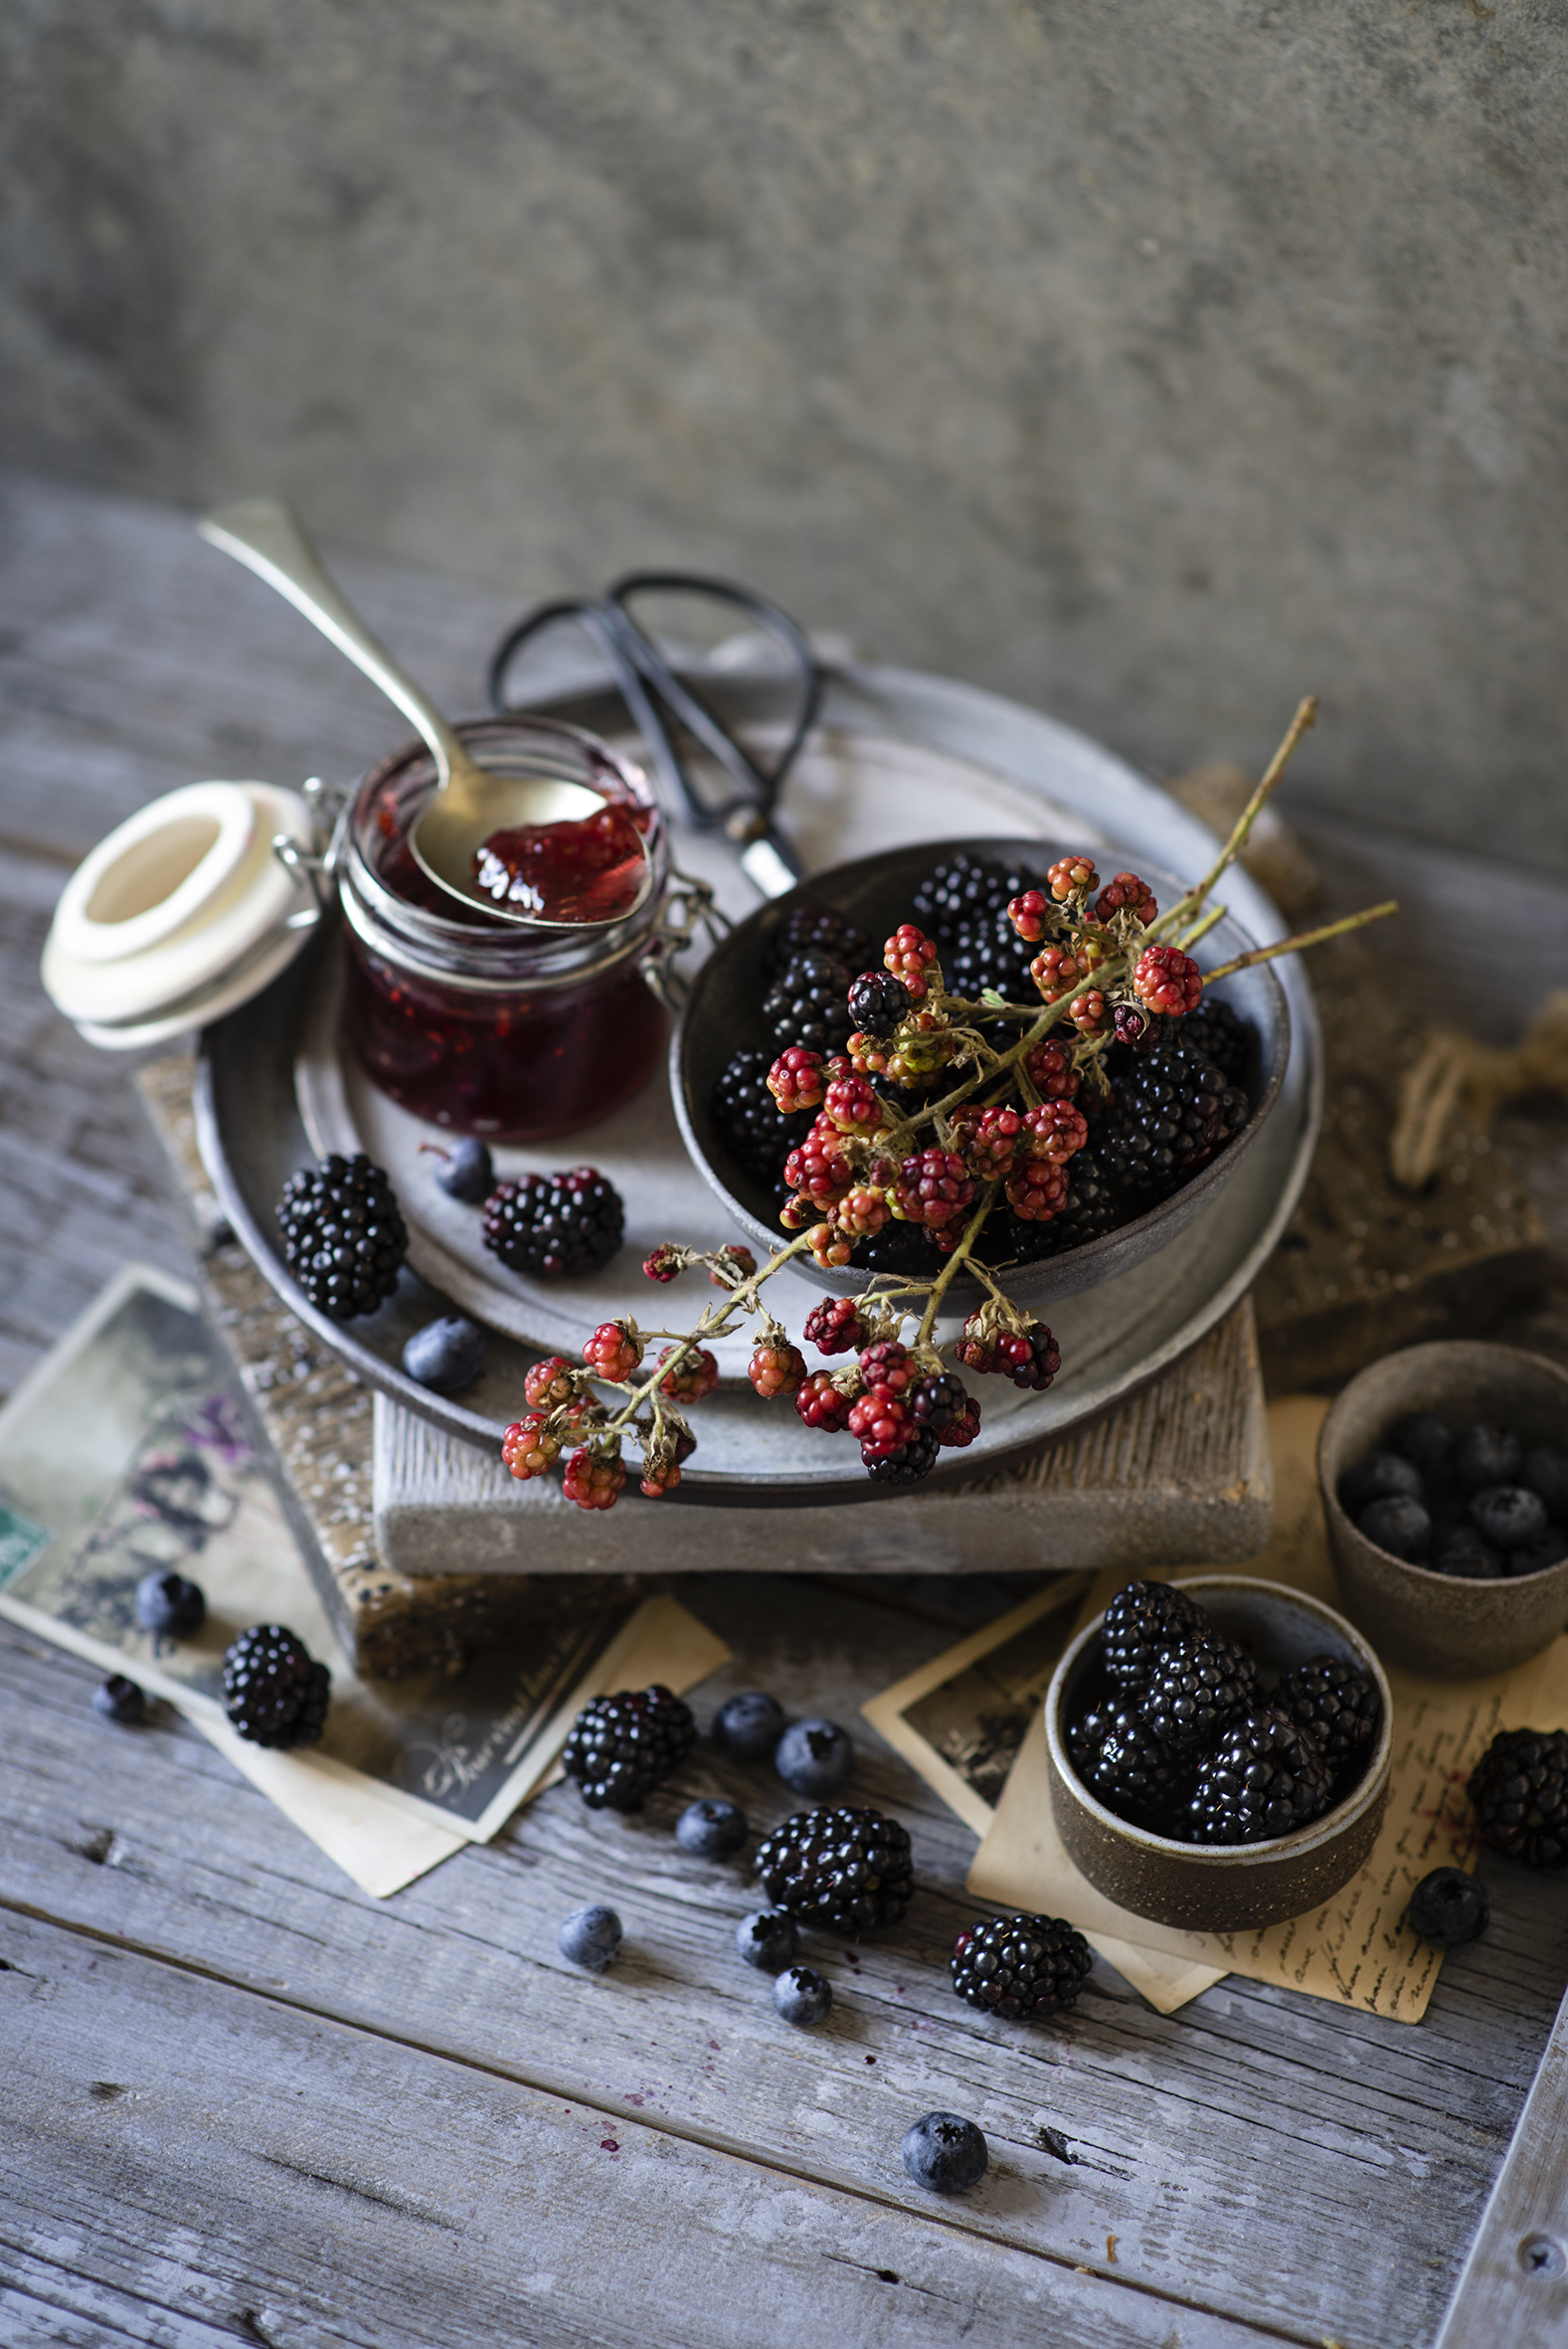 Images Fruit preserves Jar Blackberry Blueberries Food Berry Wood planks  for Mobile phone Jam Varenye boards